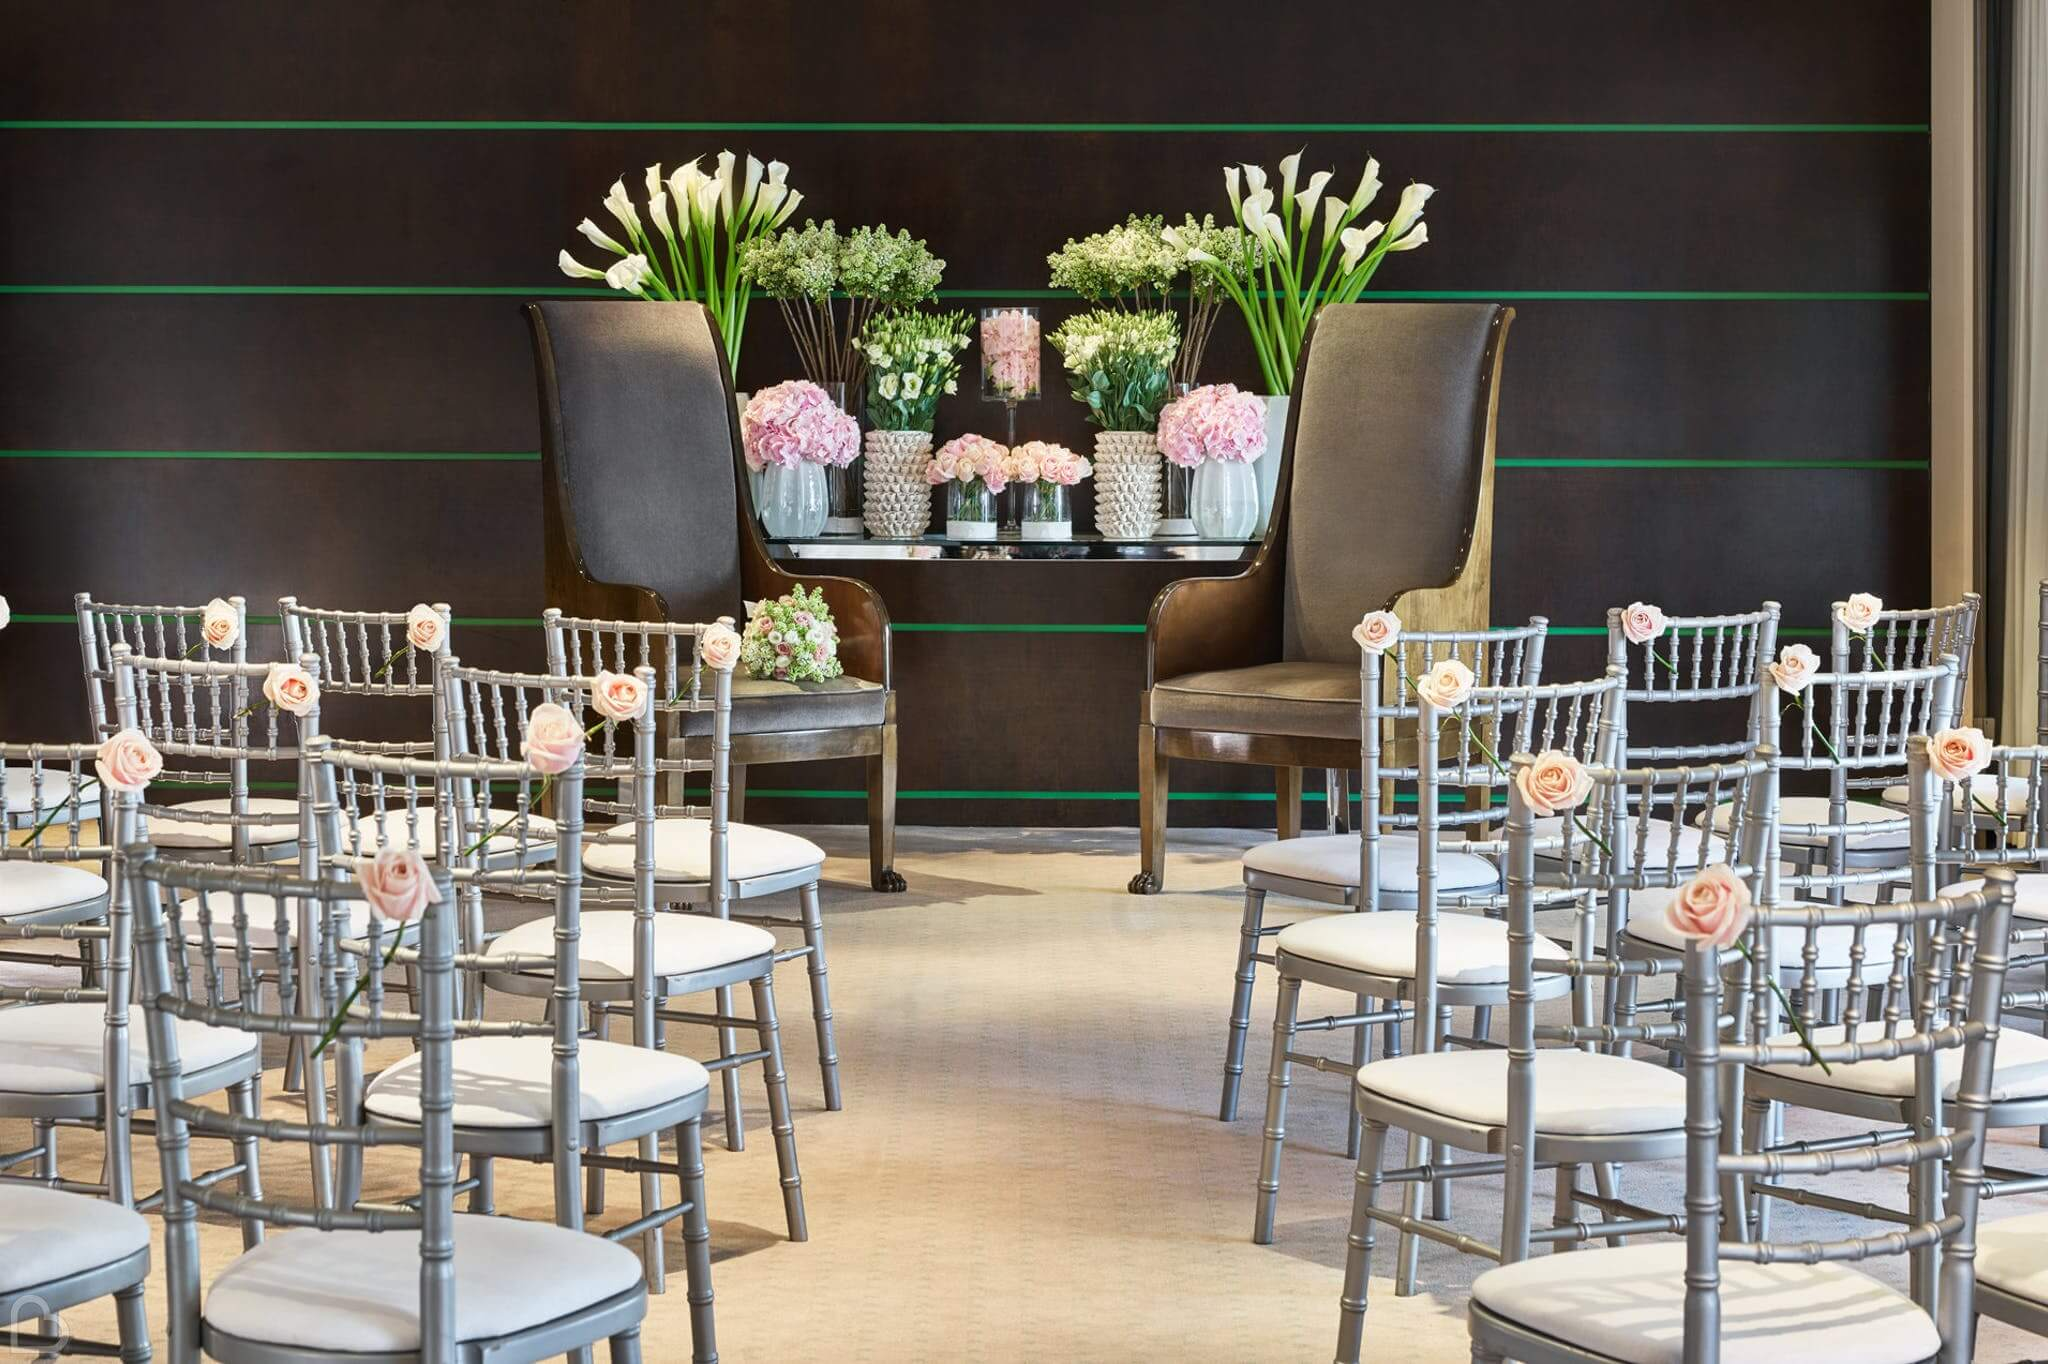 one aldwych hotel with chairs and flowers set for a wedding ceremony